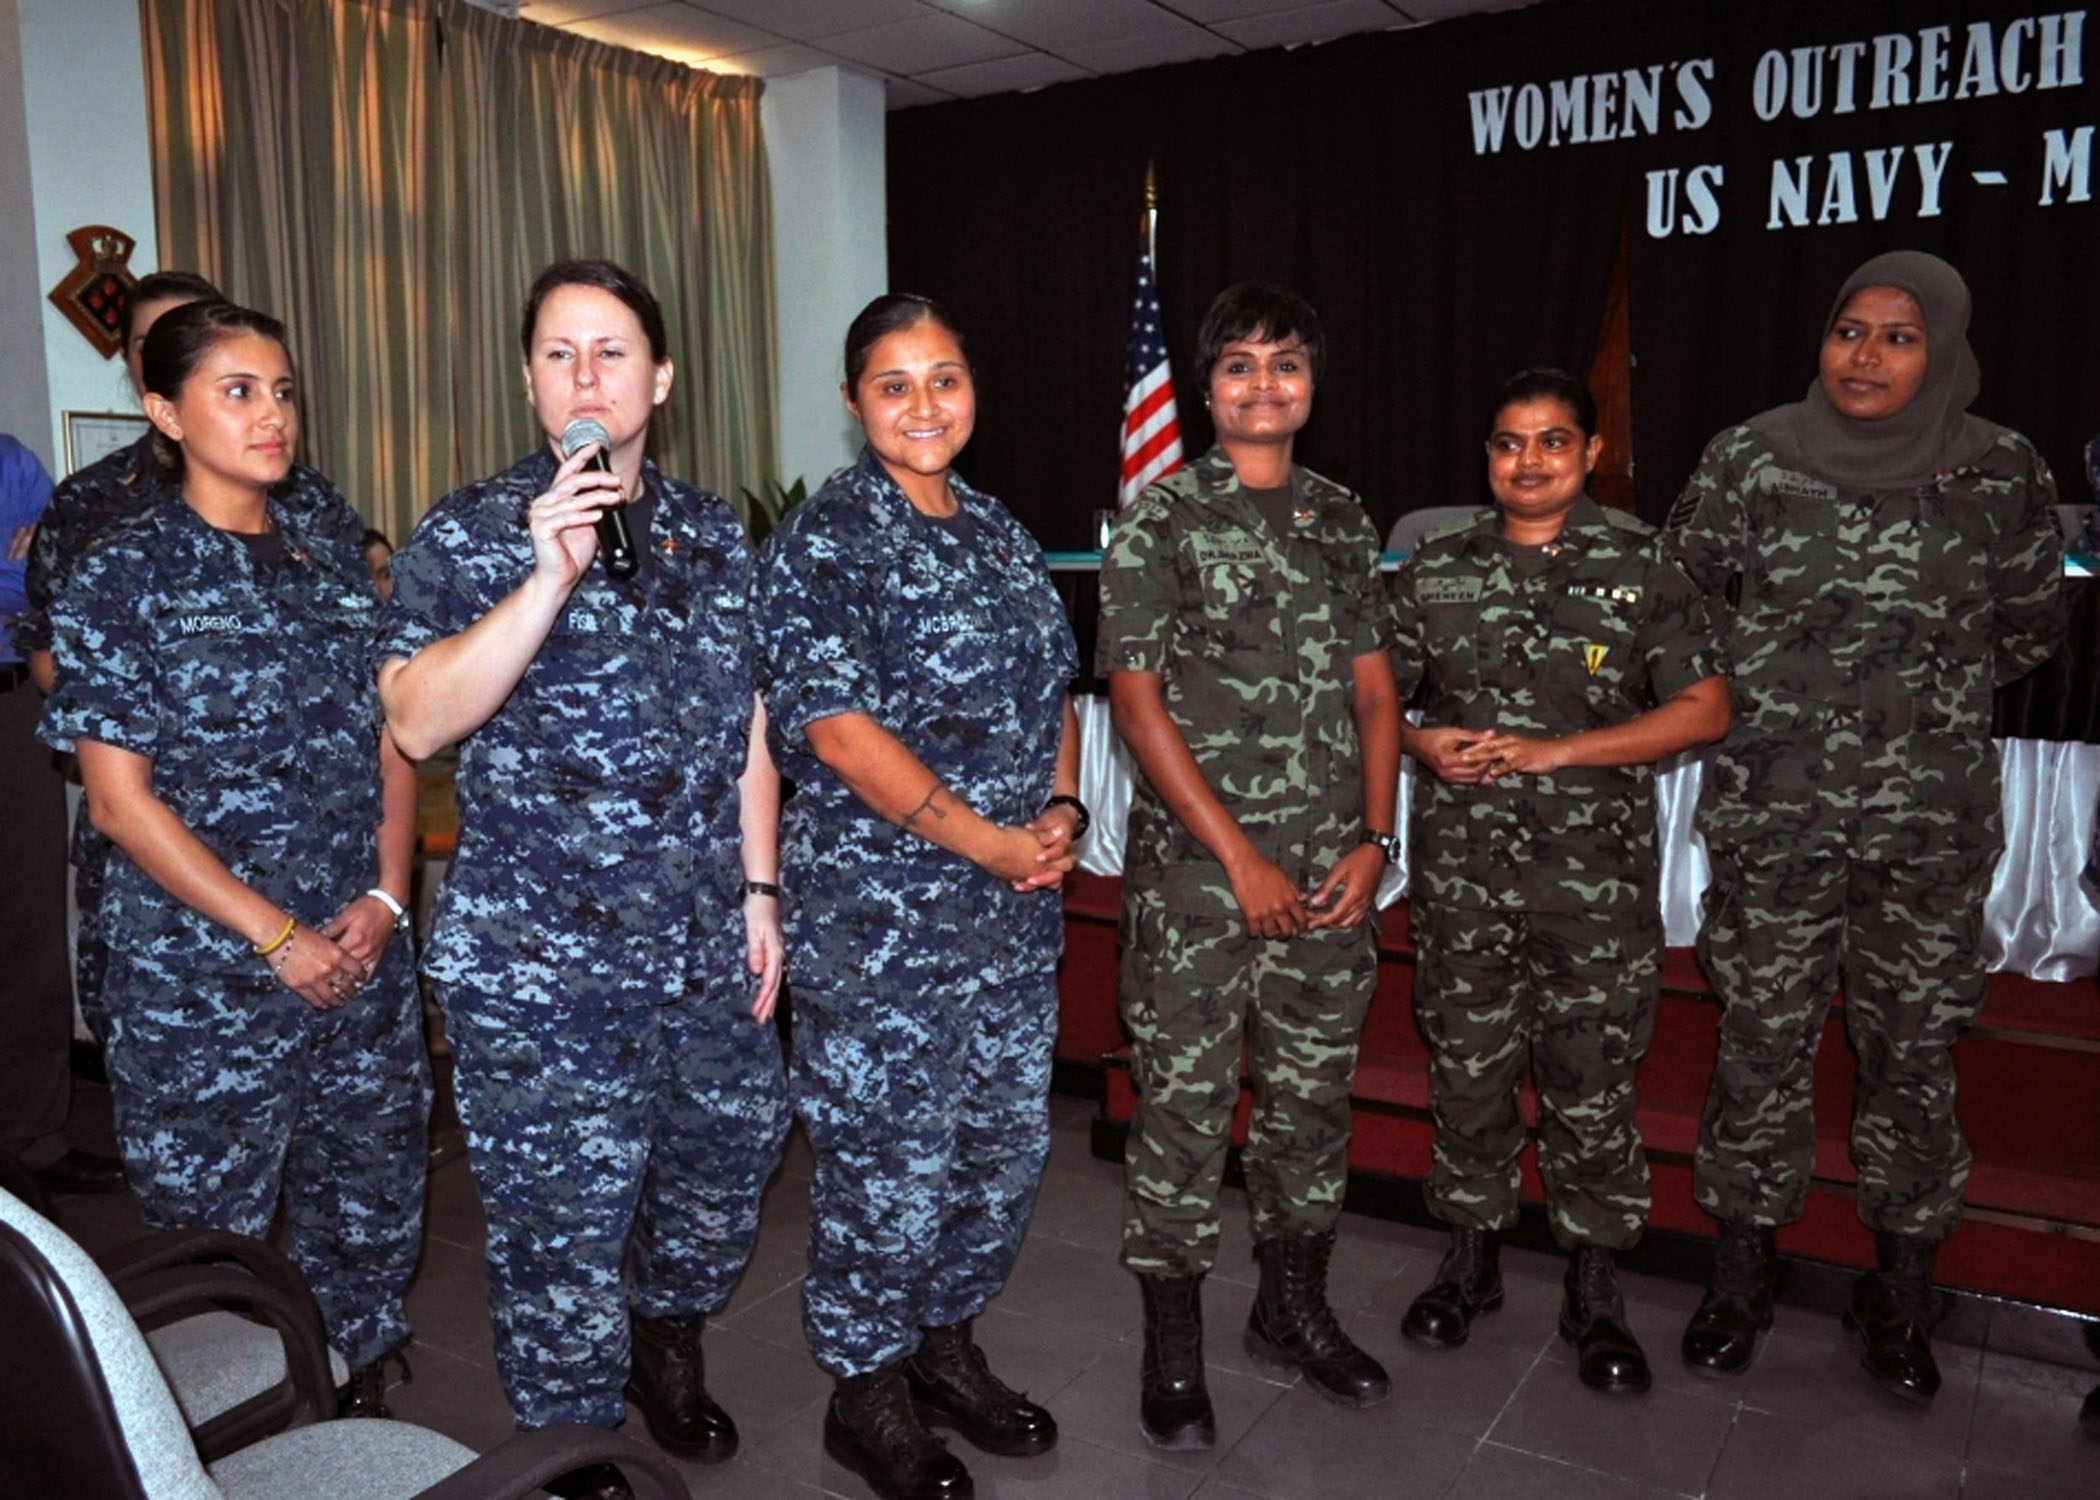 Two women could enter Navy special operations training this year